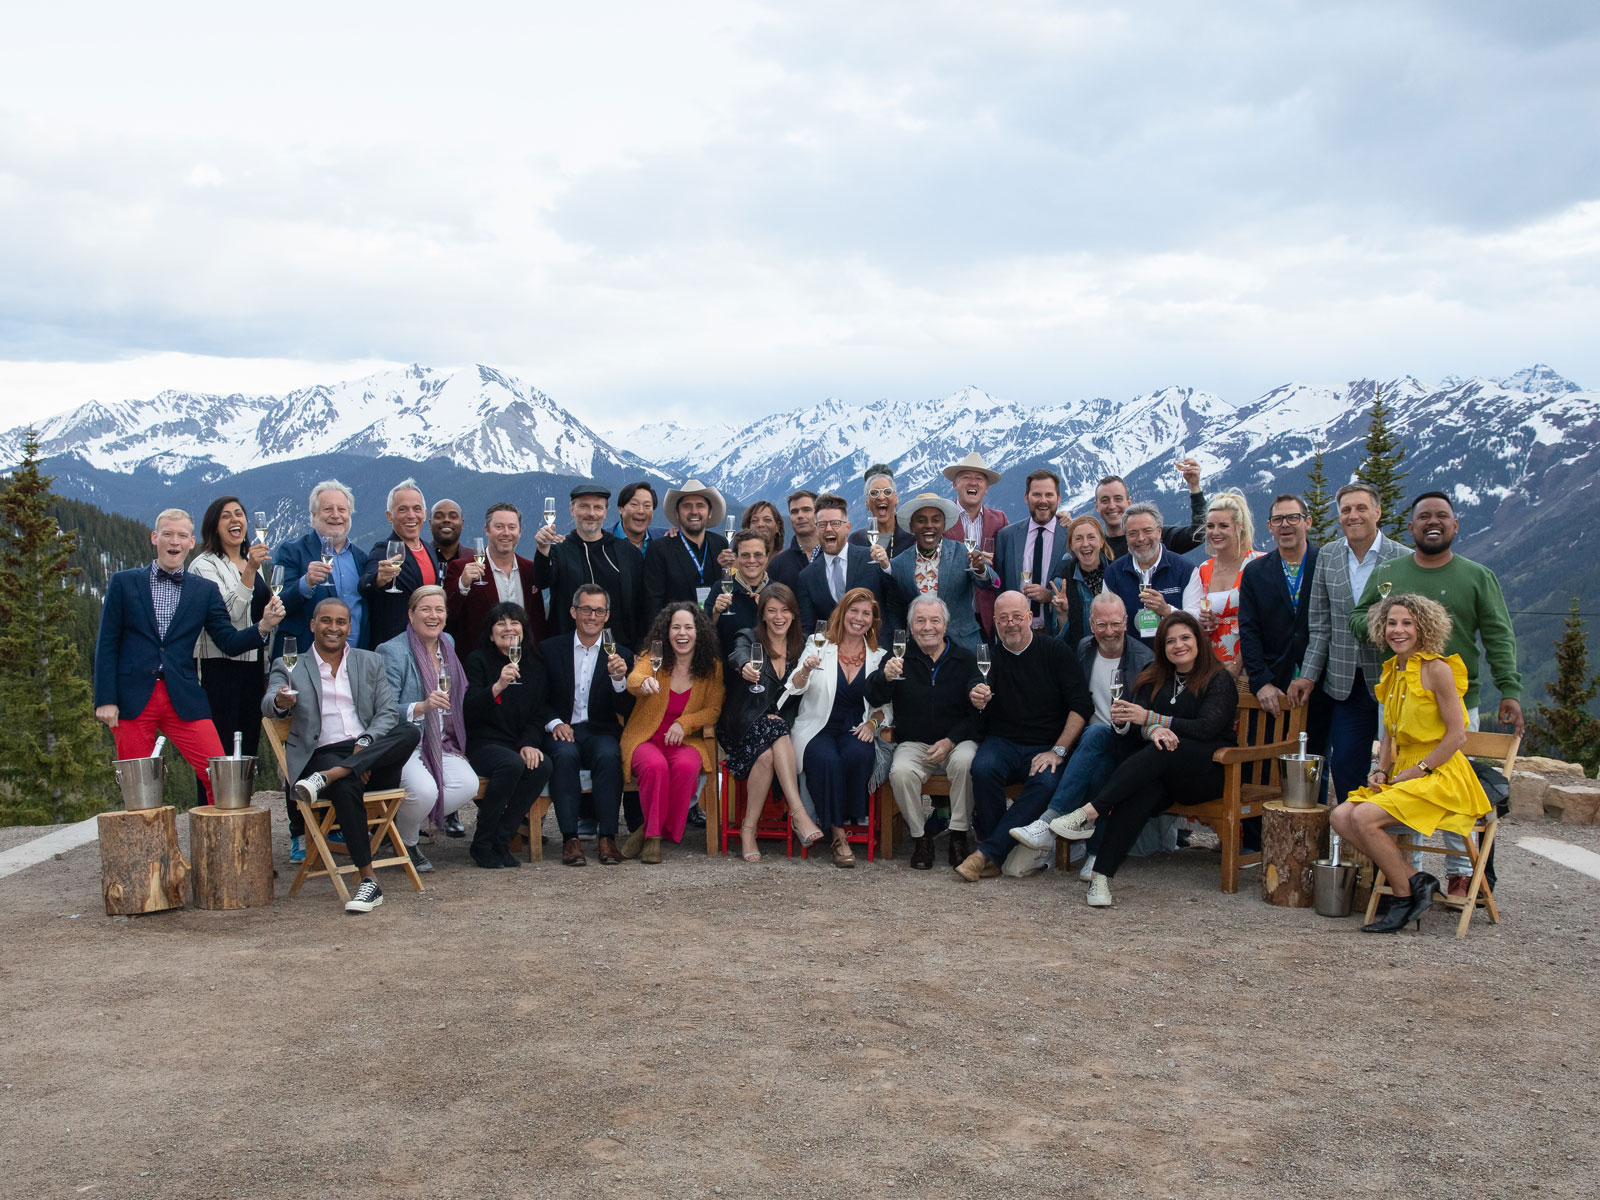 The 37th Annual Food & Wine Classic in Aspen Was the Most Star-Powered Yet